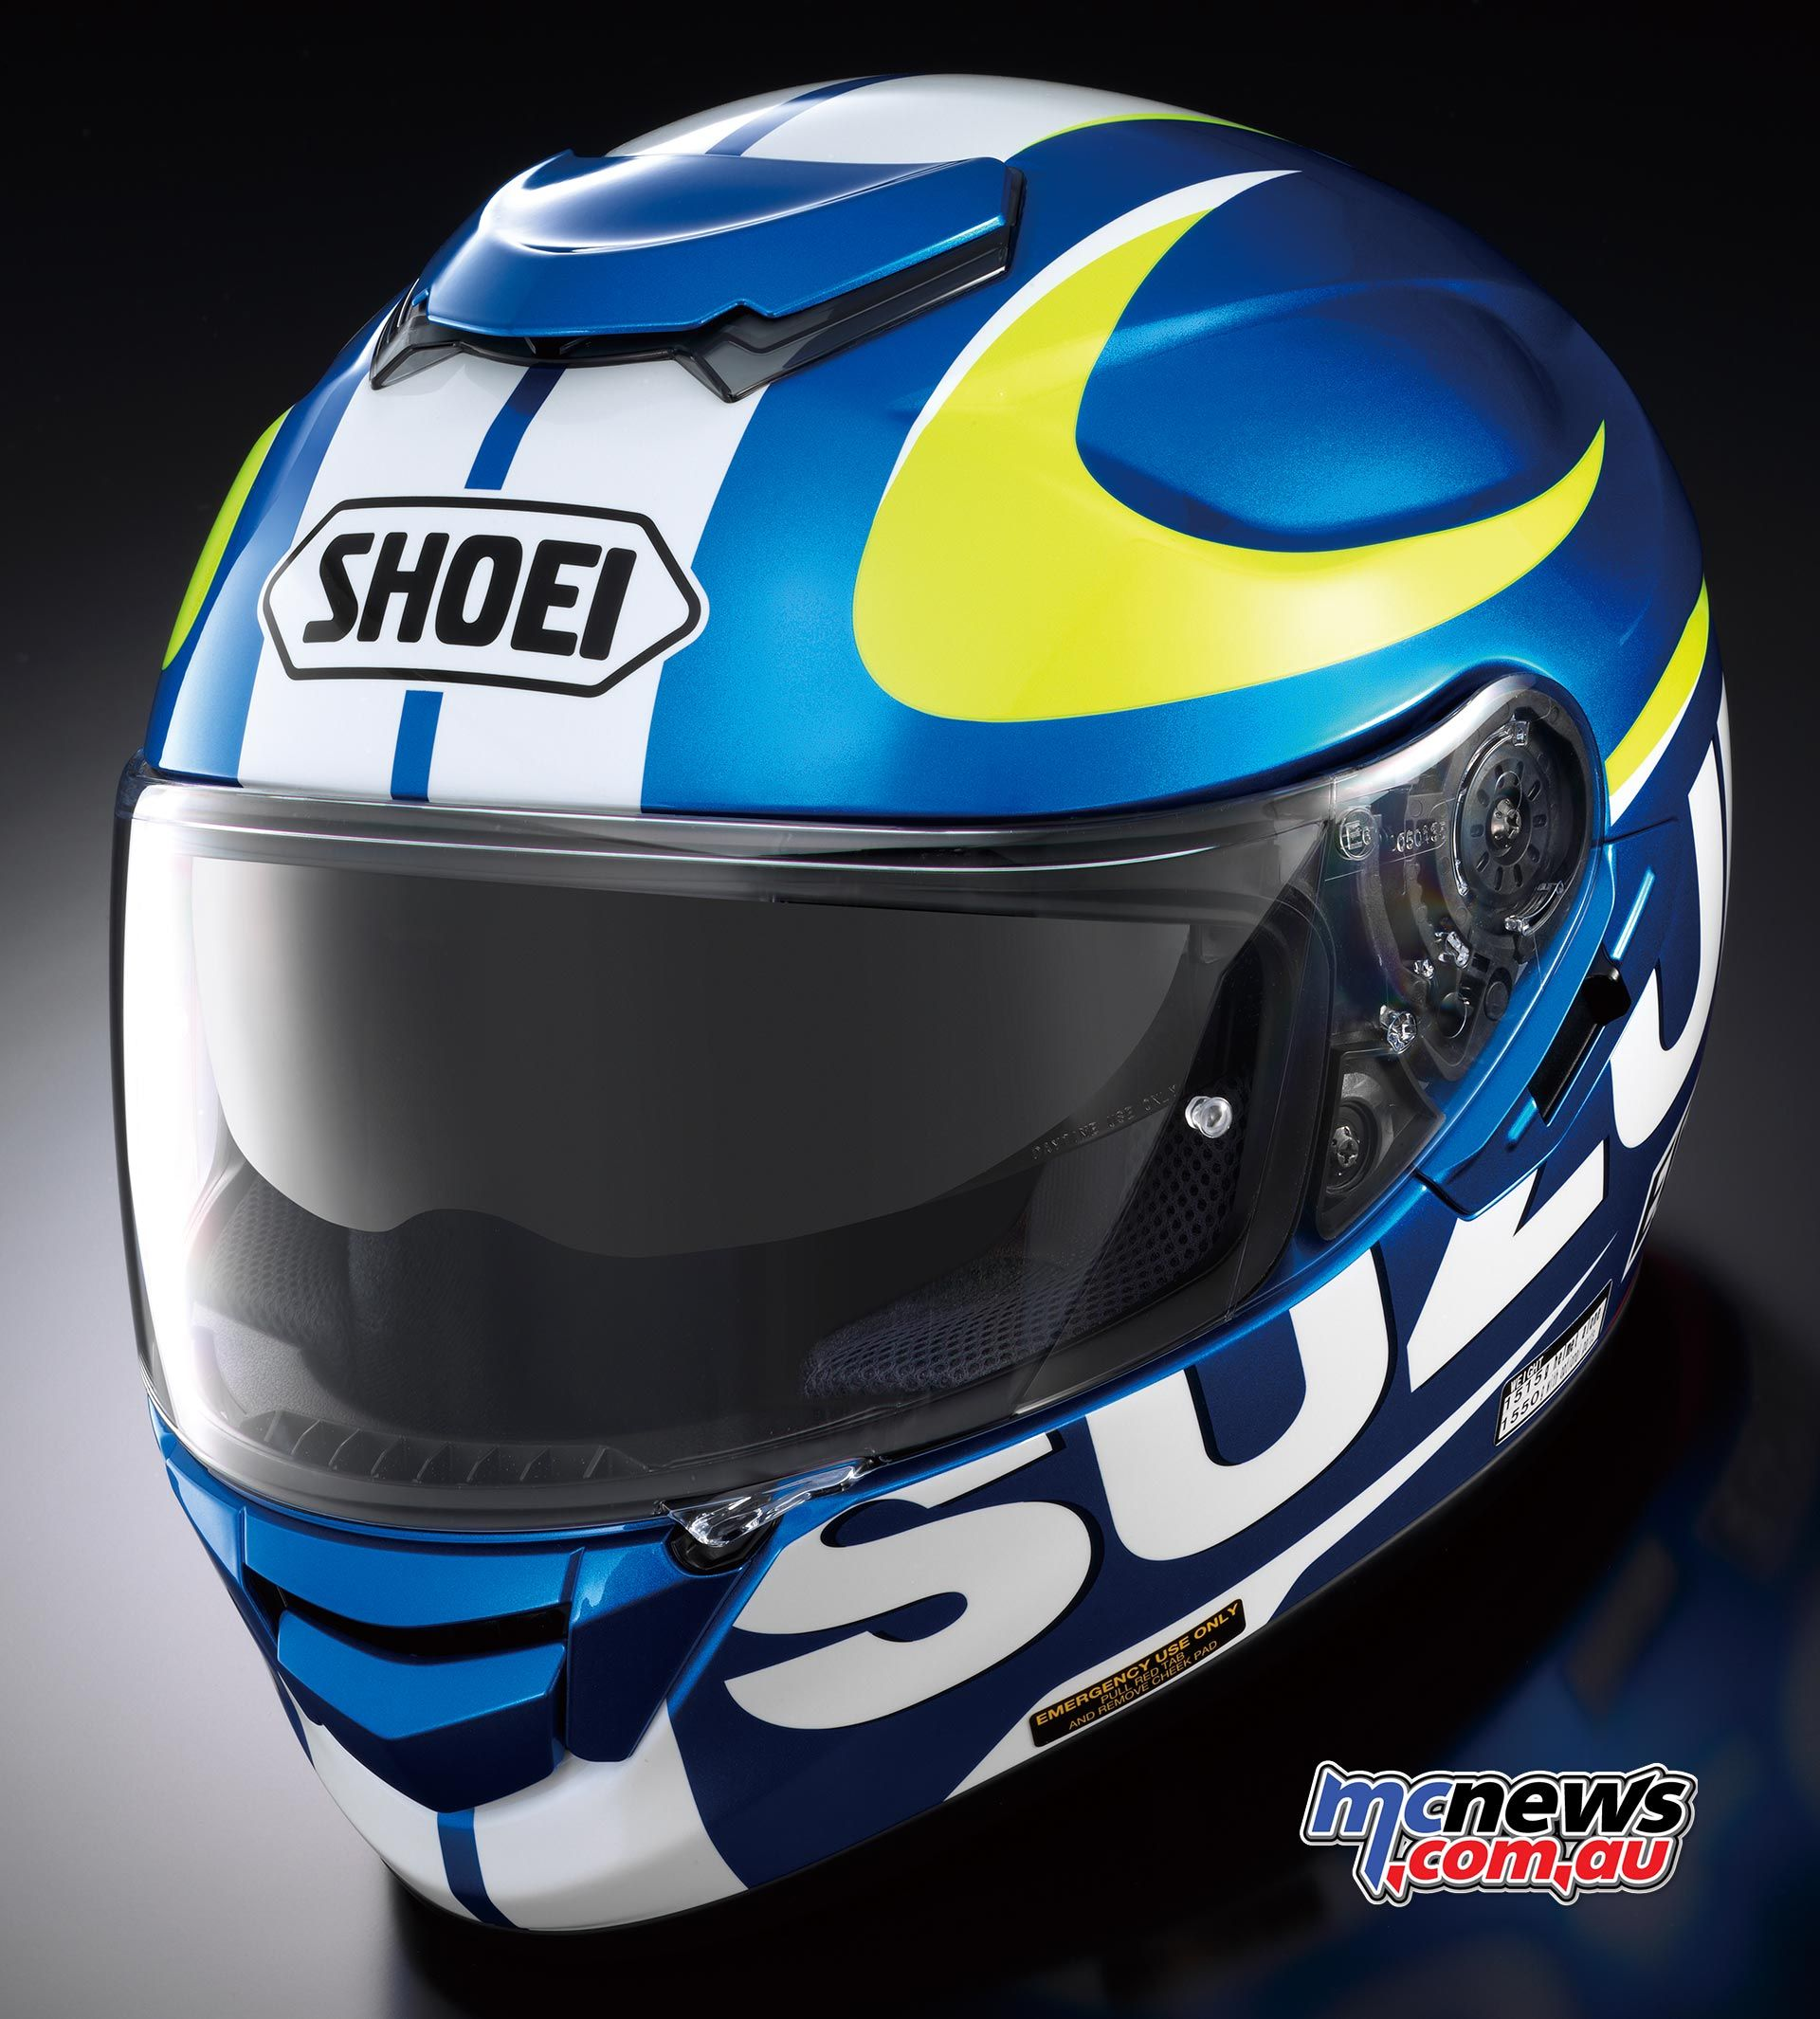 Available exclusively through Suzuki dealers, Shoei GTAir